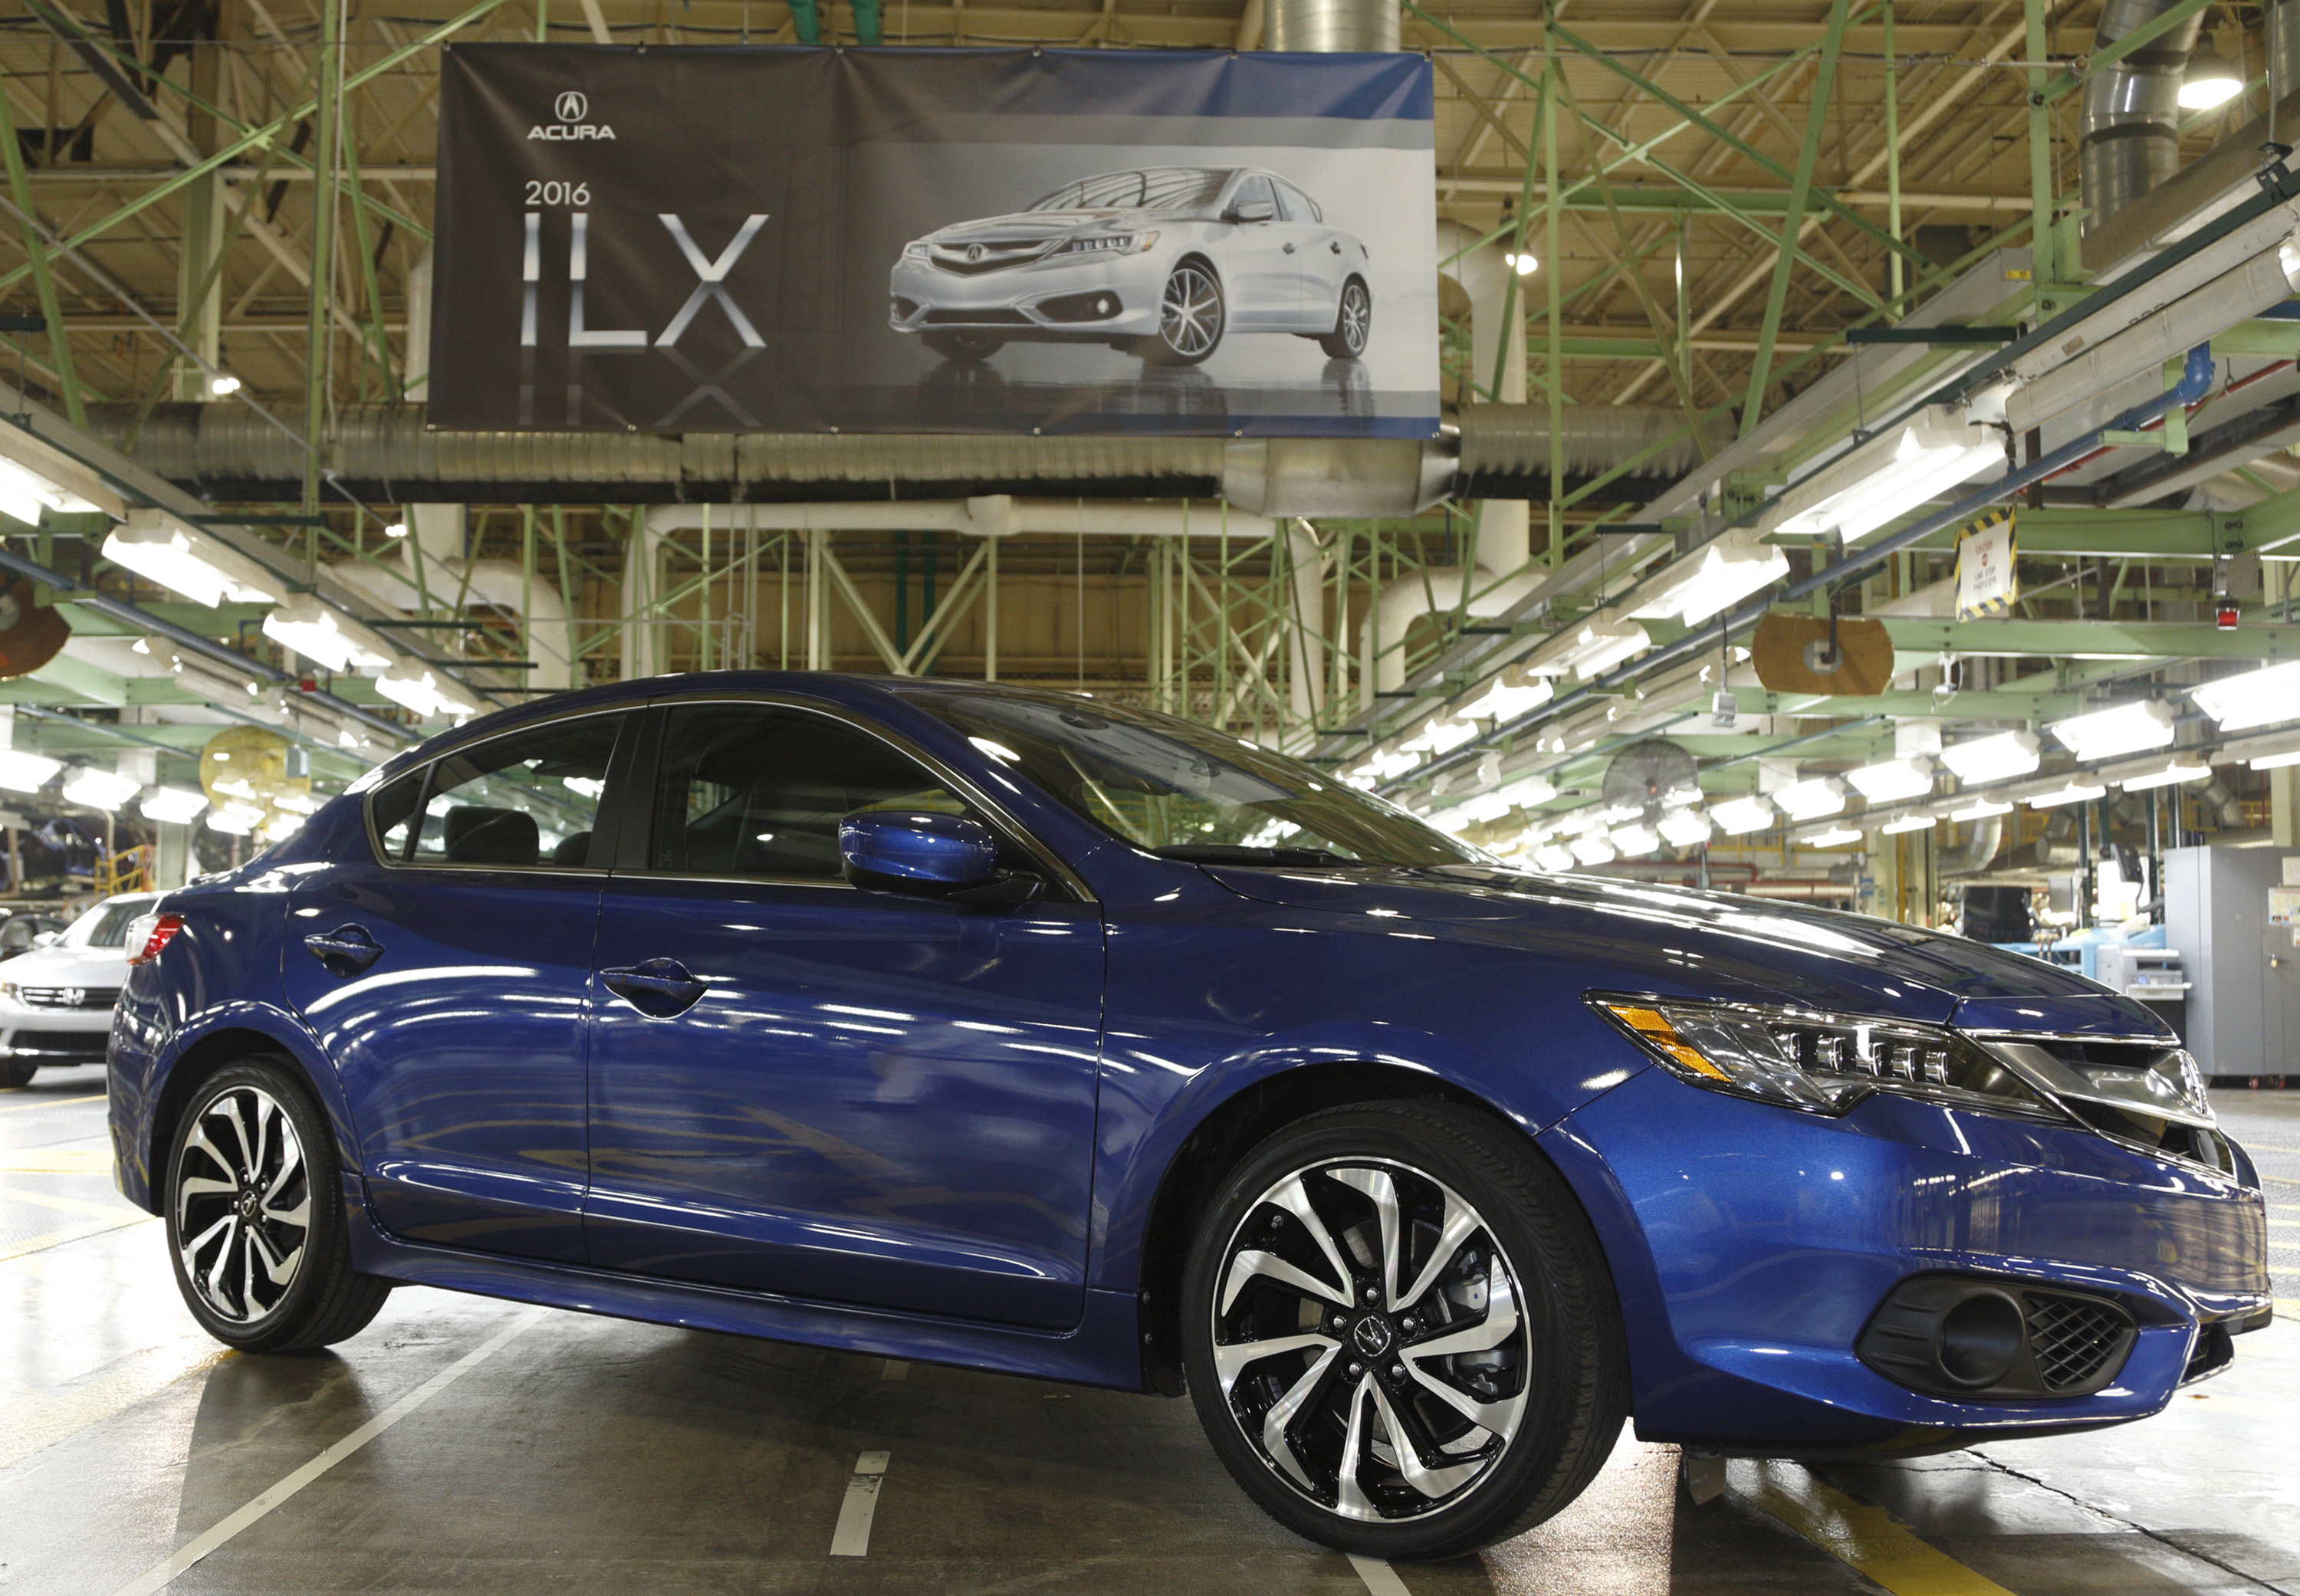 2016 Acura ILX Starts Production at Marysville Auto Plant in